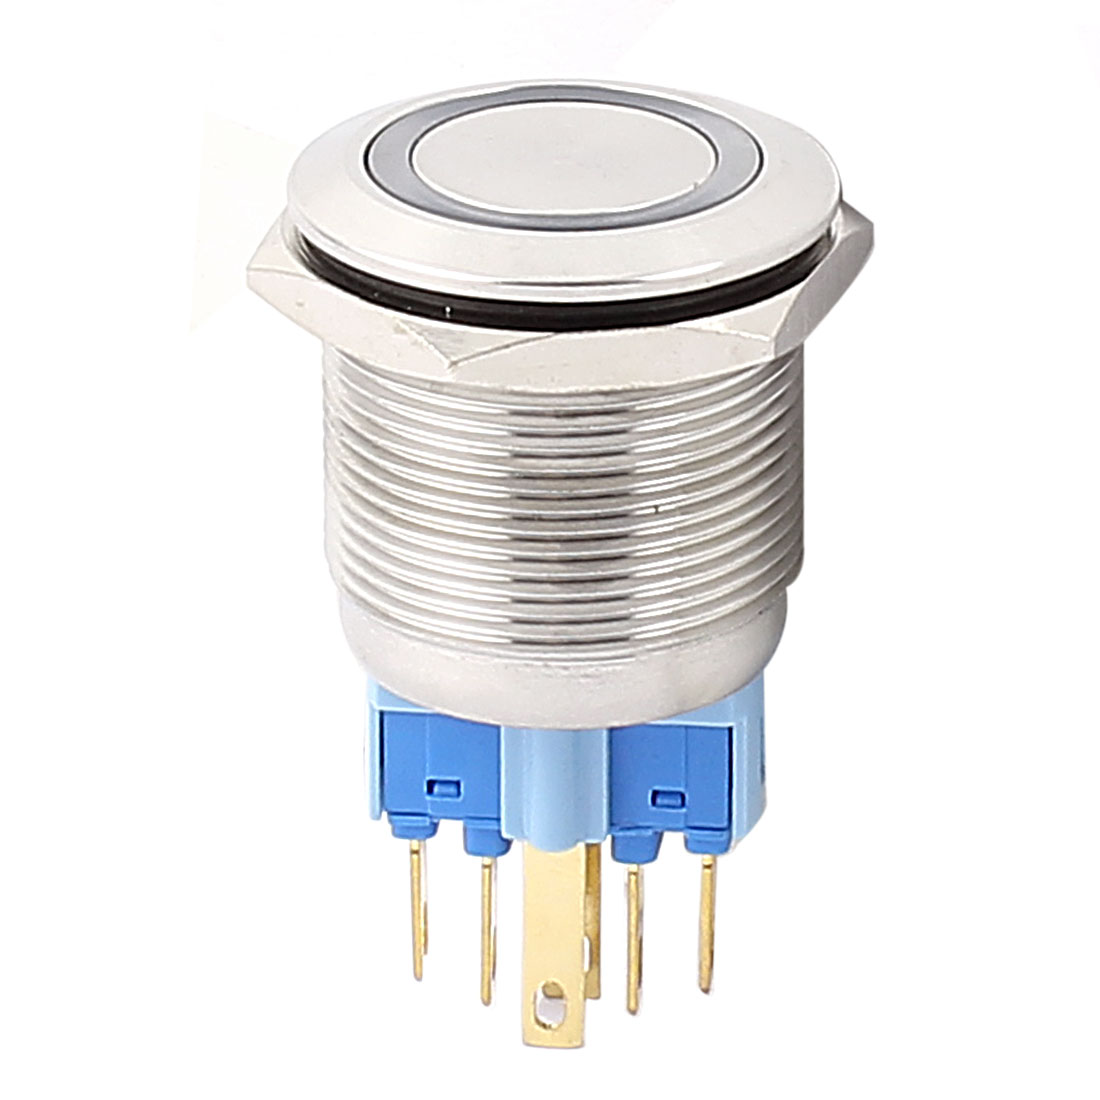 220V 22mm Dia Thread Blue LED Angle Eyes Latching Metal Pushbutton Switch